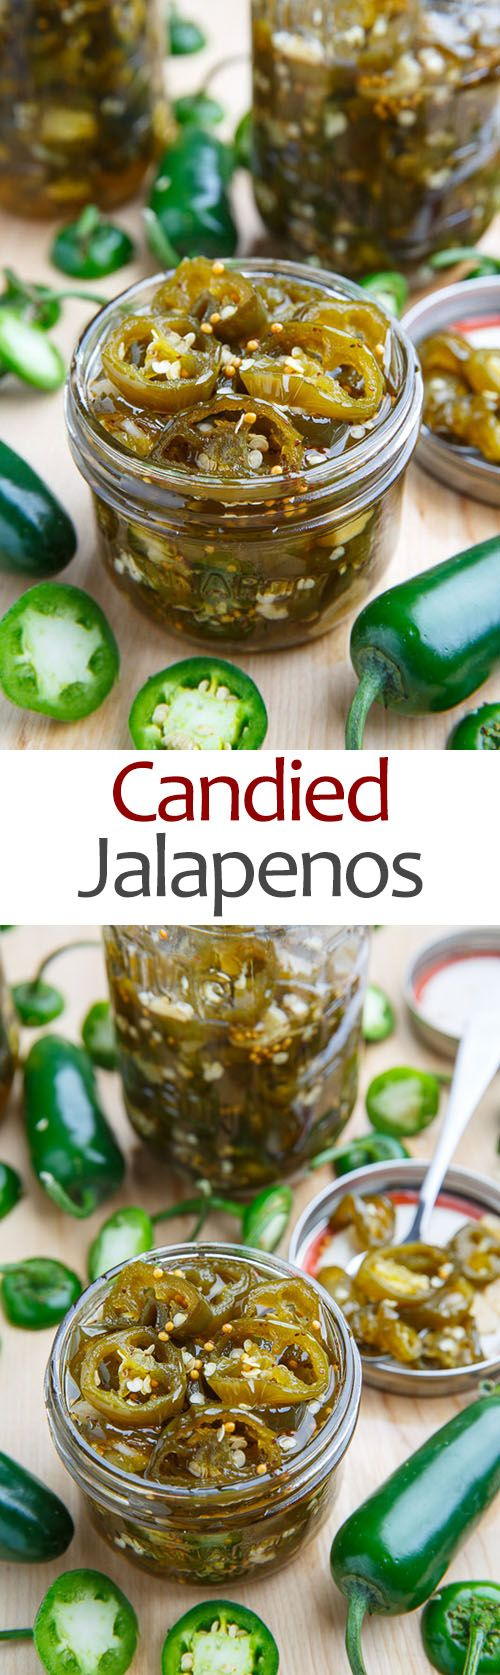 Candied Jalapeños Recipe — Dishmaps